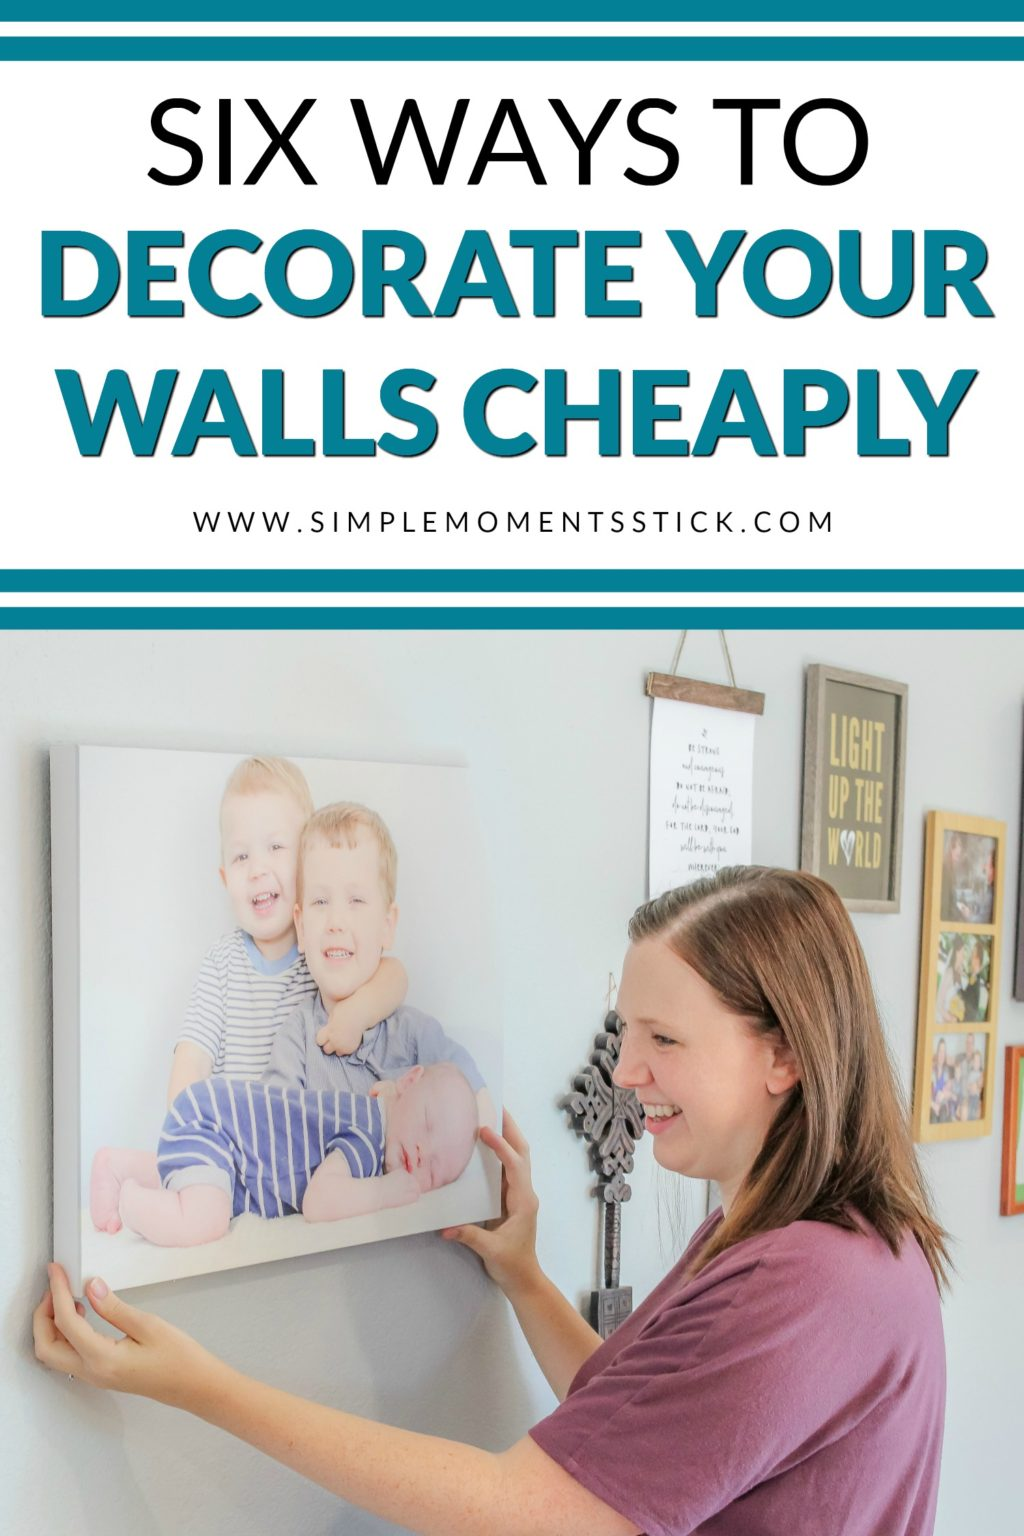 Woman hanging canvas picture of two young boys and a newborn baby with text - Six Ways to Decorate Your Walls Cheaply